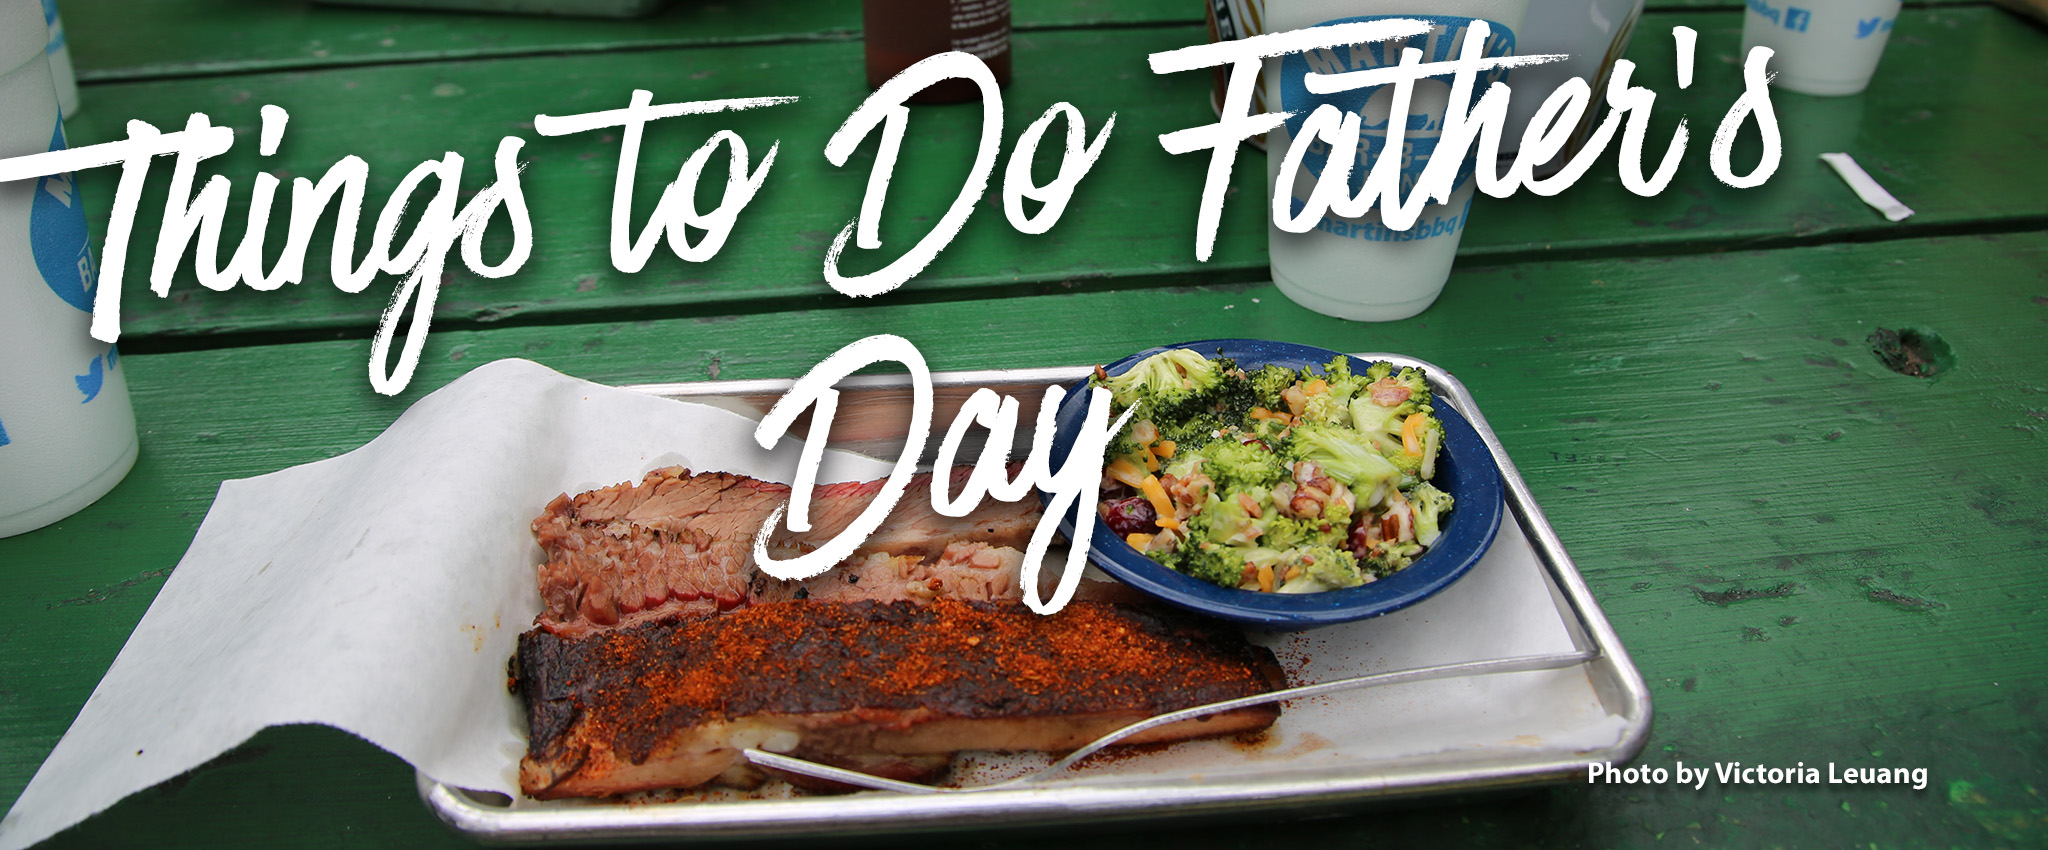 Things to Do Father's Day